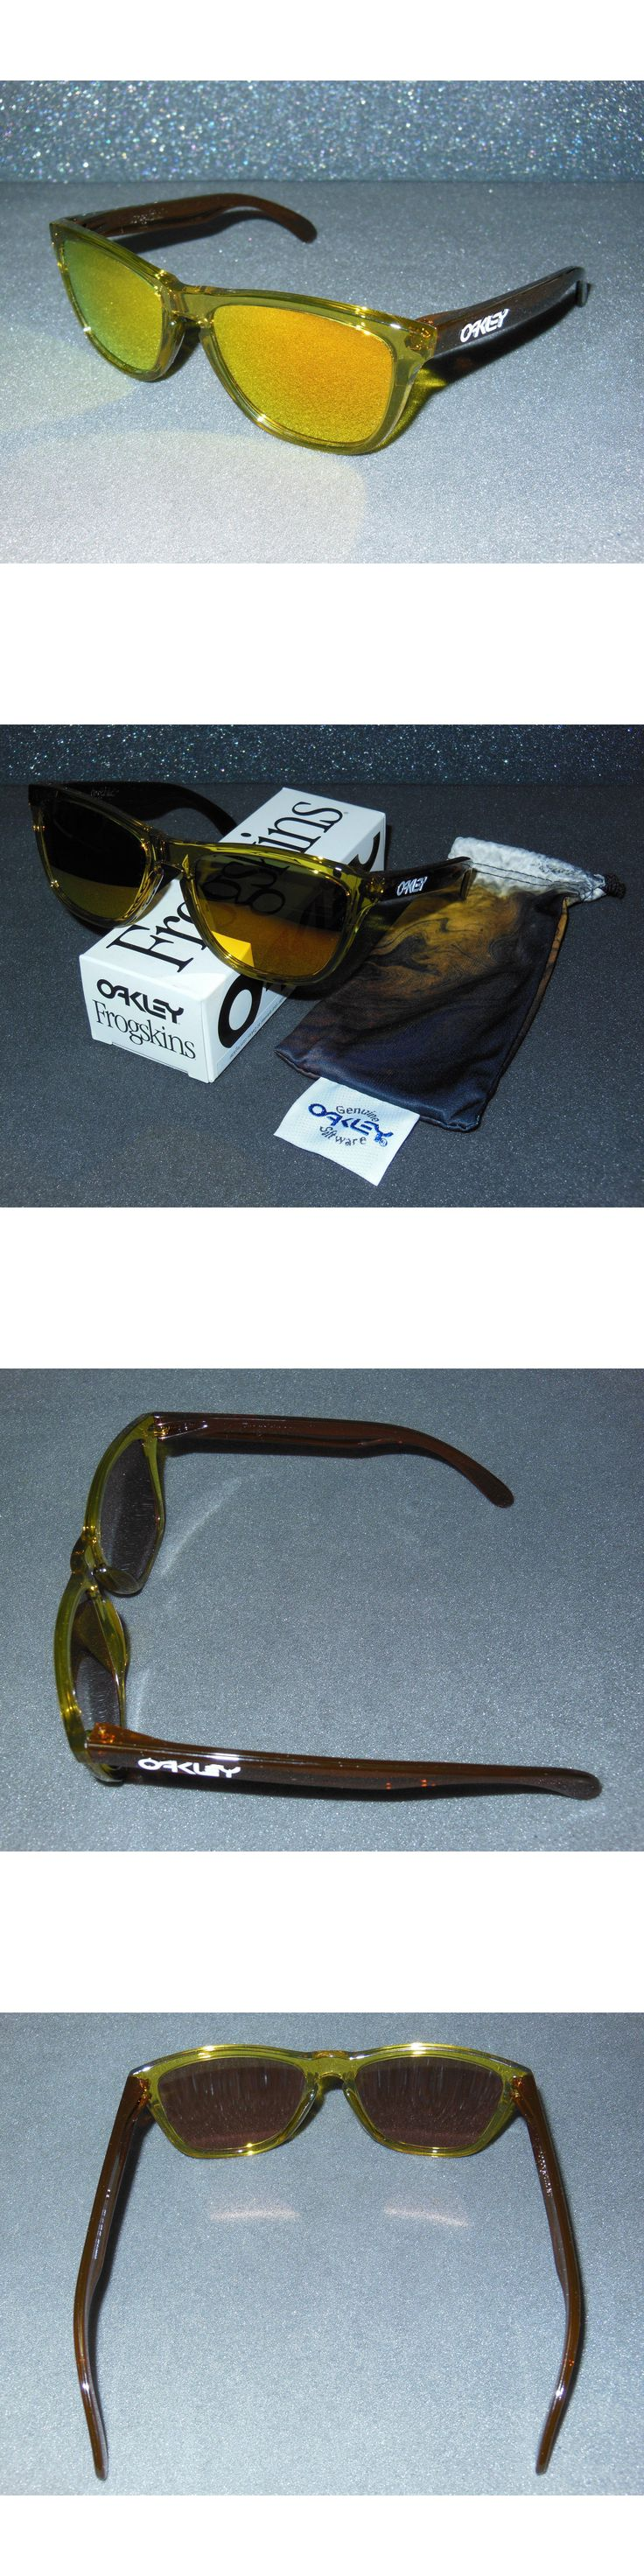 Sunglasses and Goggles 56185: New Blemished* Oakley Frogskins Sunglasses Moto Octane Fire Iridium Retro 80S -> BUY IT NOW ONLY: $79.95 on eBay!